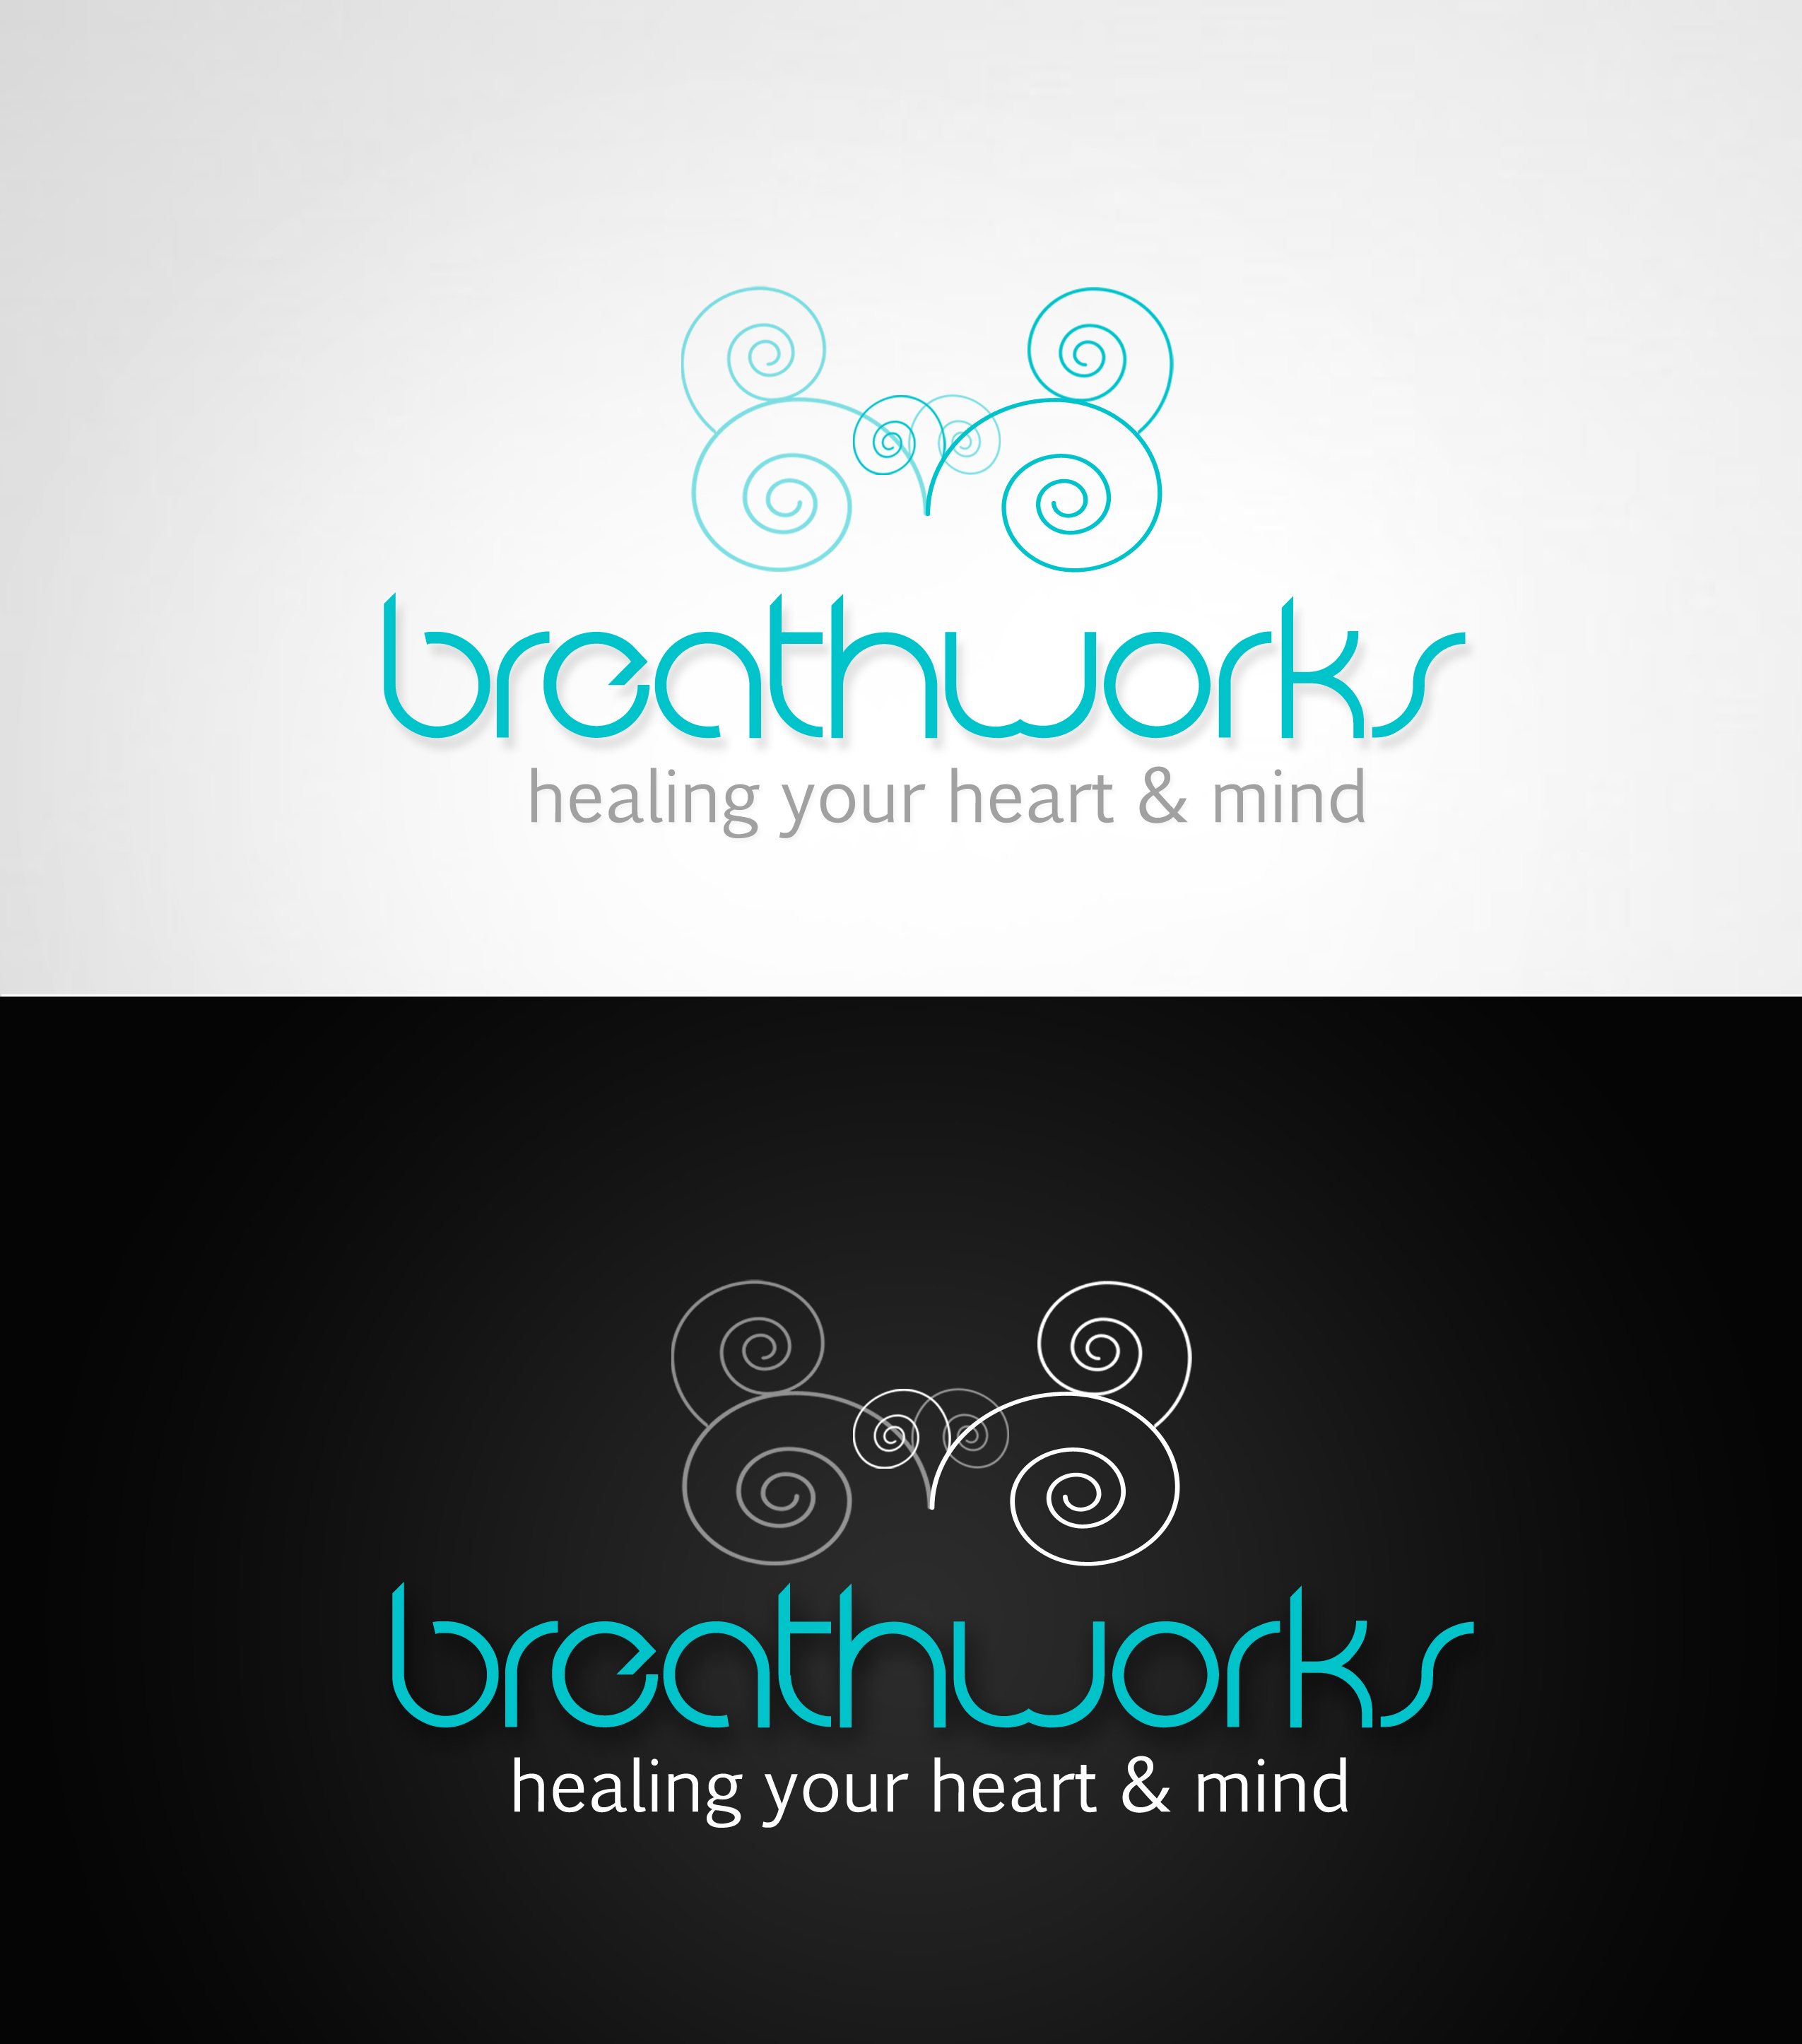 Logo Design by Lama Creative - Entry No. 17 in the Logo Design Contest New Logo Design for Breathworks.